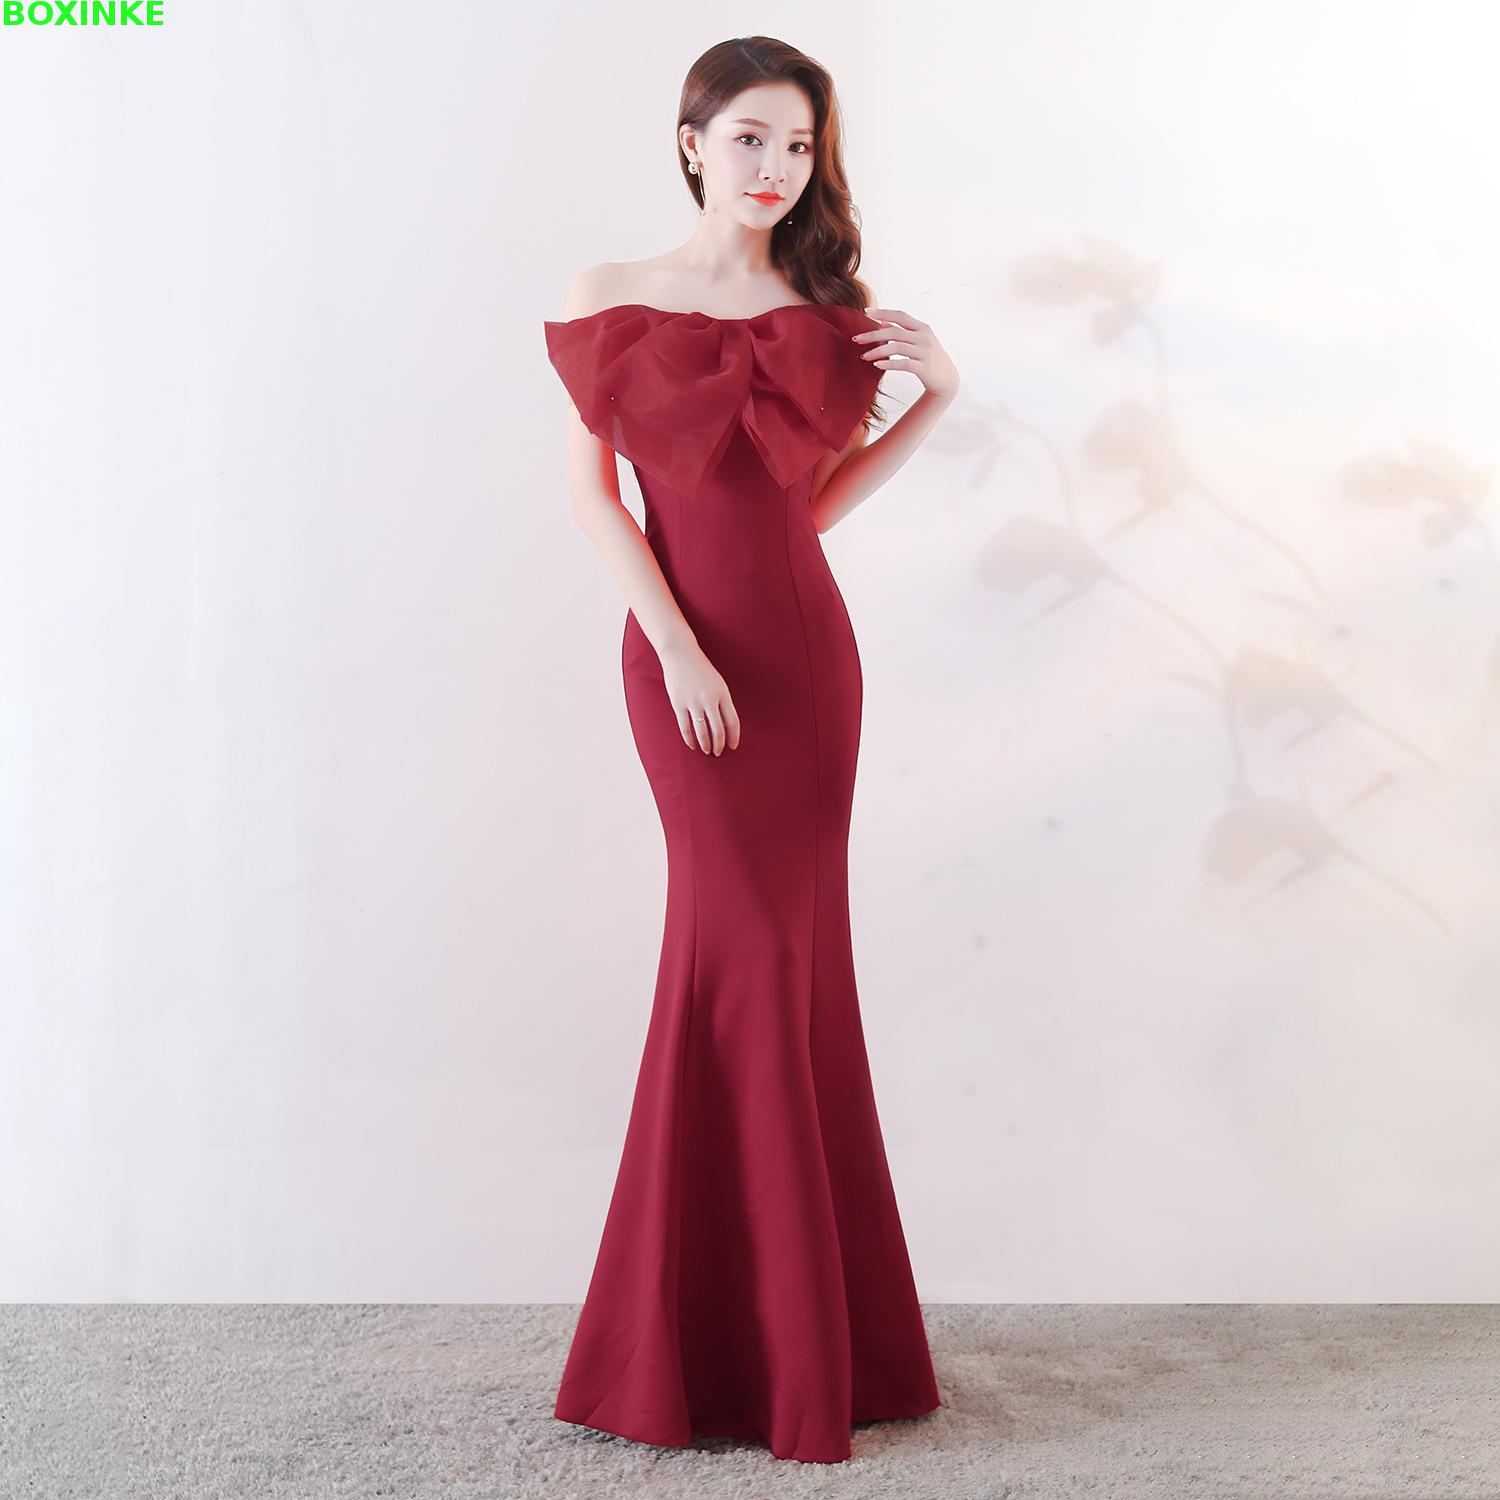 Plus Size Direct Selling Vestidos Mujer Vestido De Festa 2018 The New Sexy Banquet Presided Over Bra Fish Tail And Thin Dress in Dresses from Women 39 s Clothing